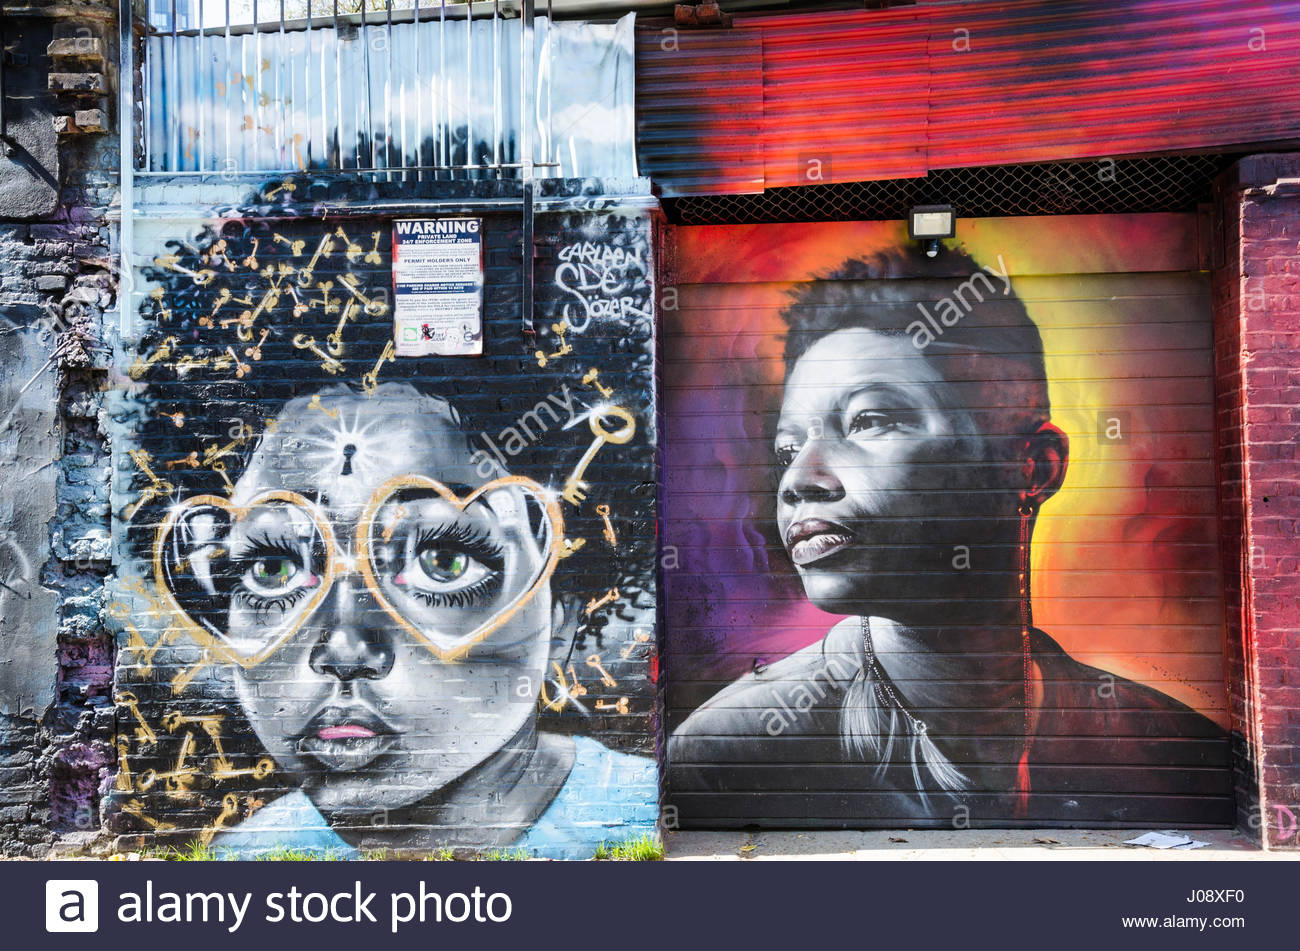 colourful-murals-adorn-the-walls-of-a-pa